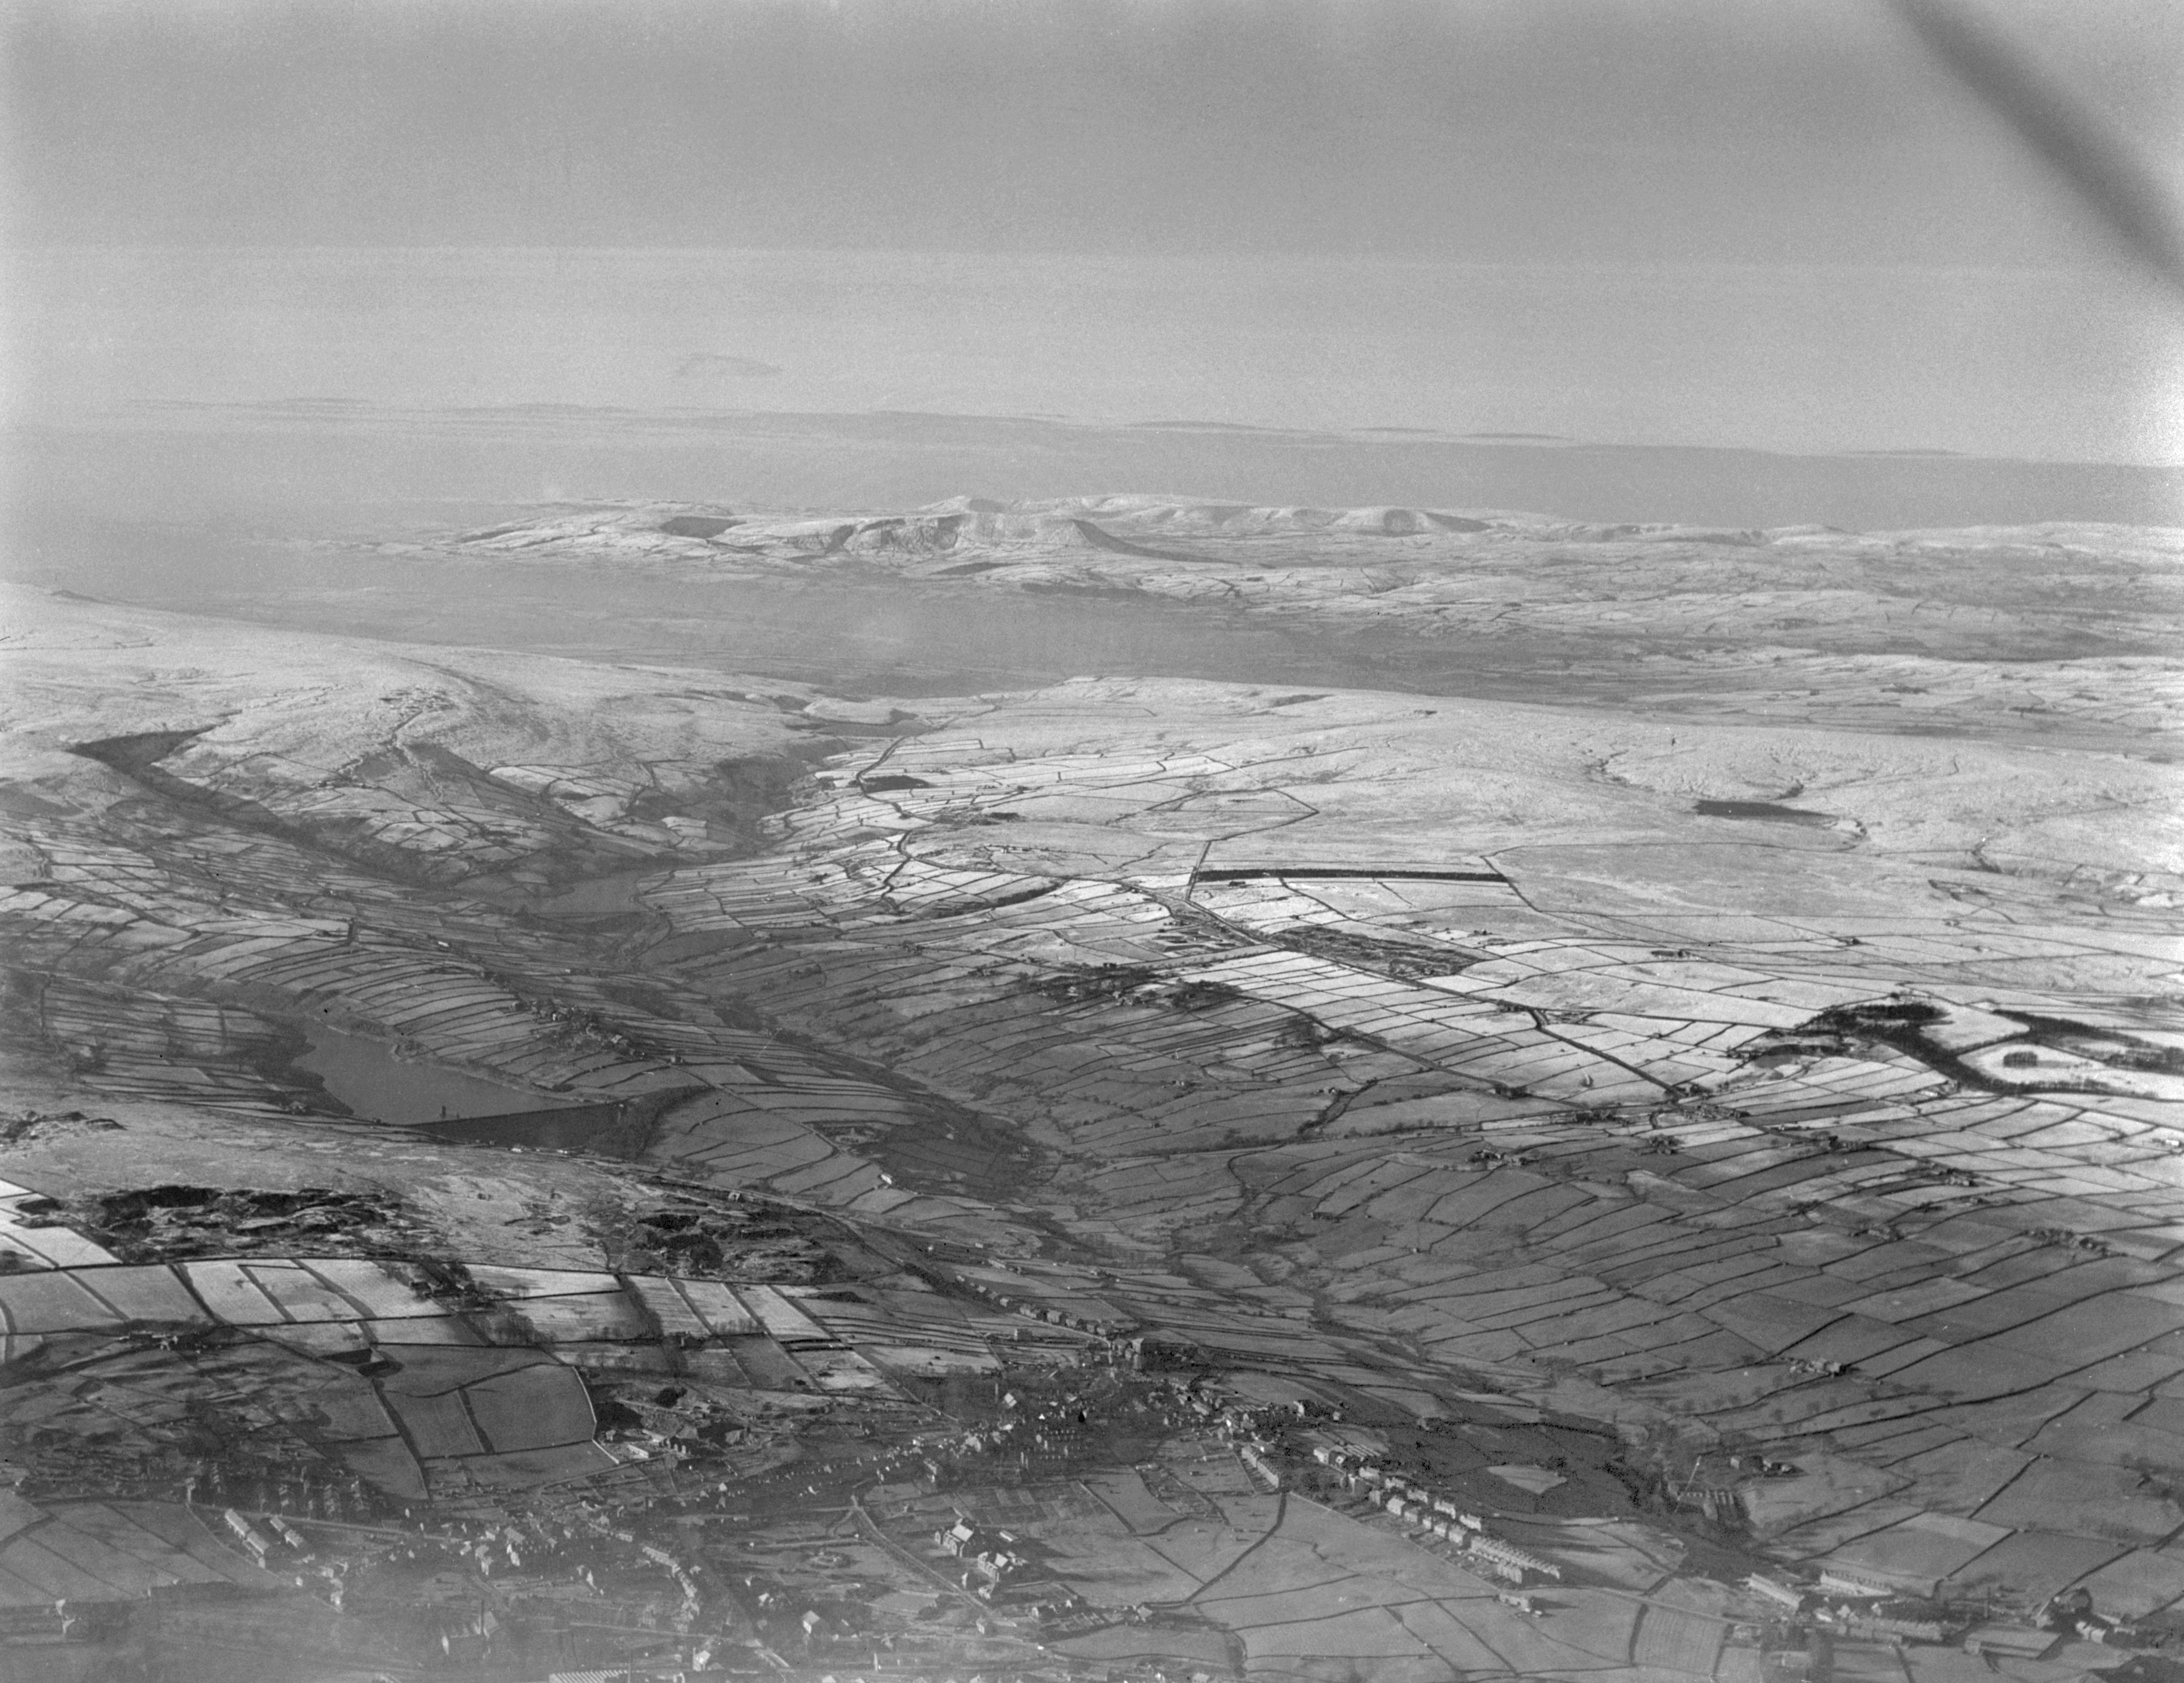 Aerial view of Haworth